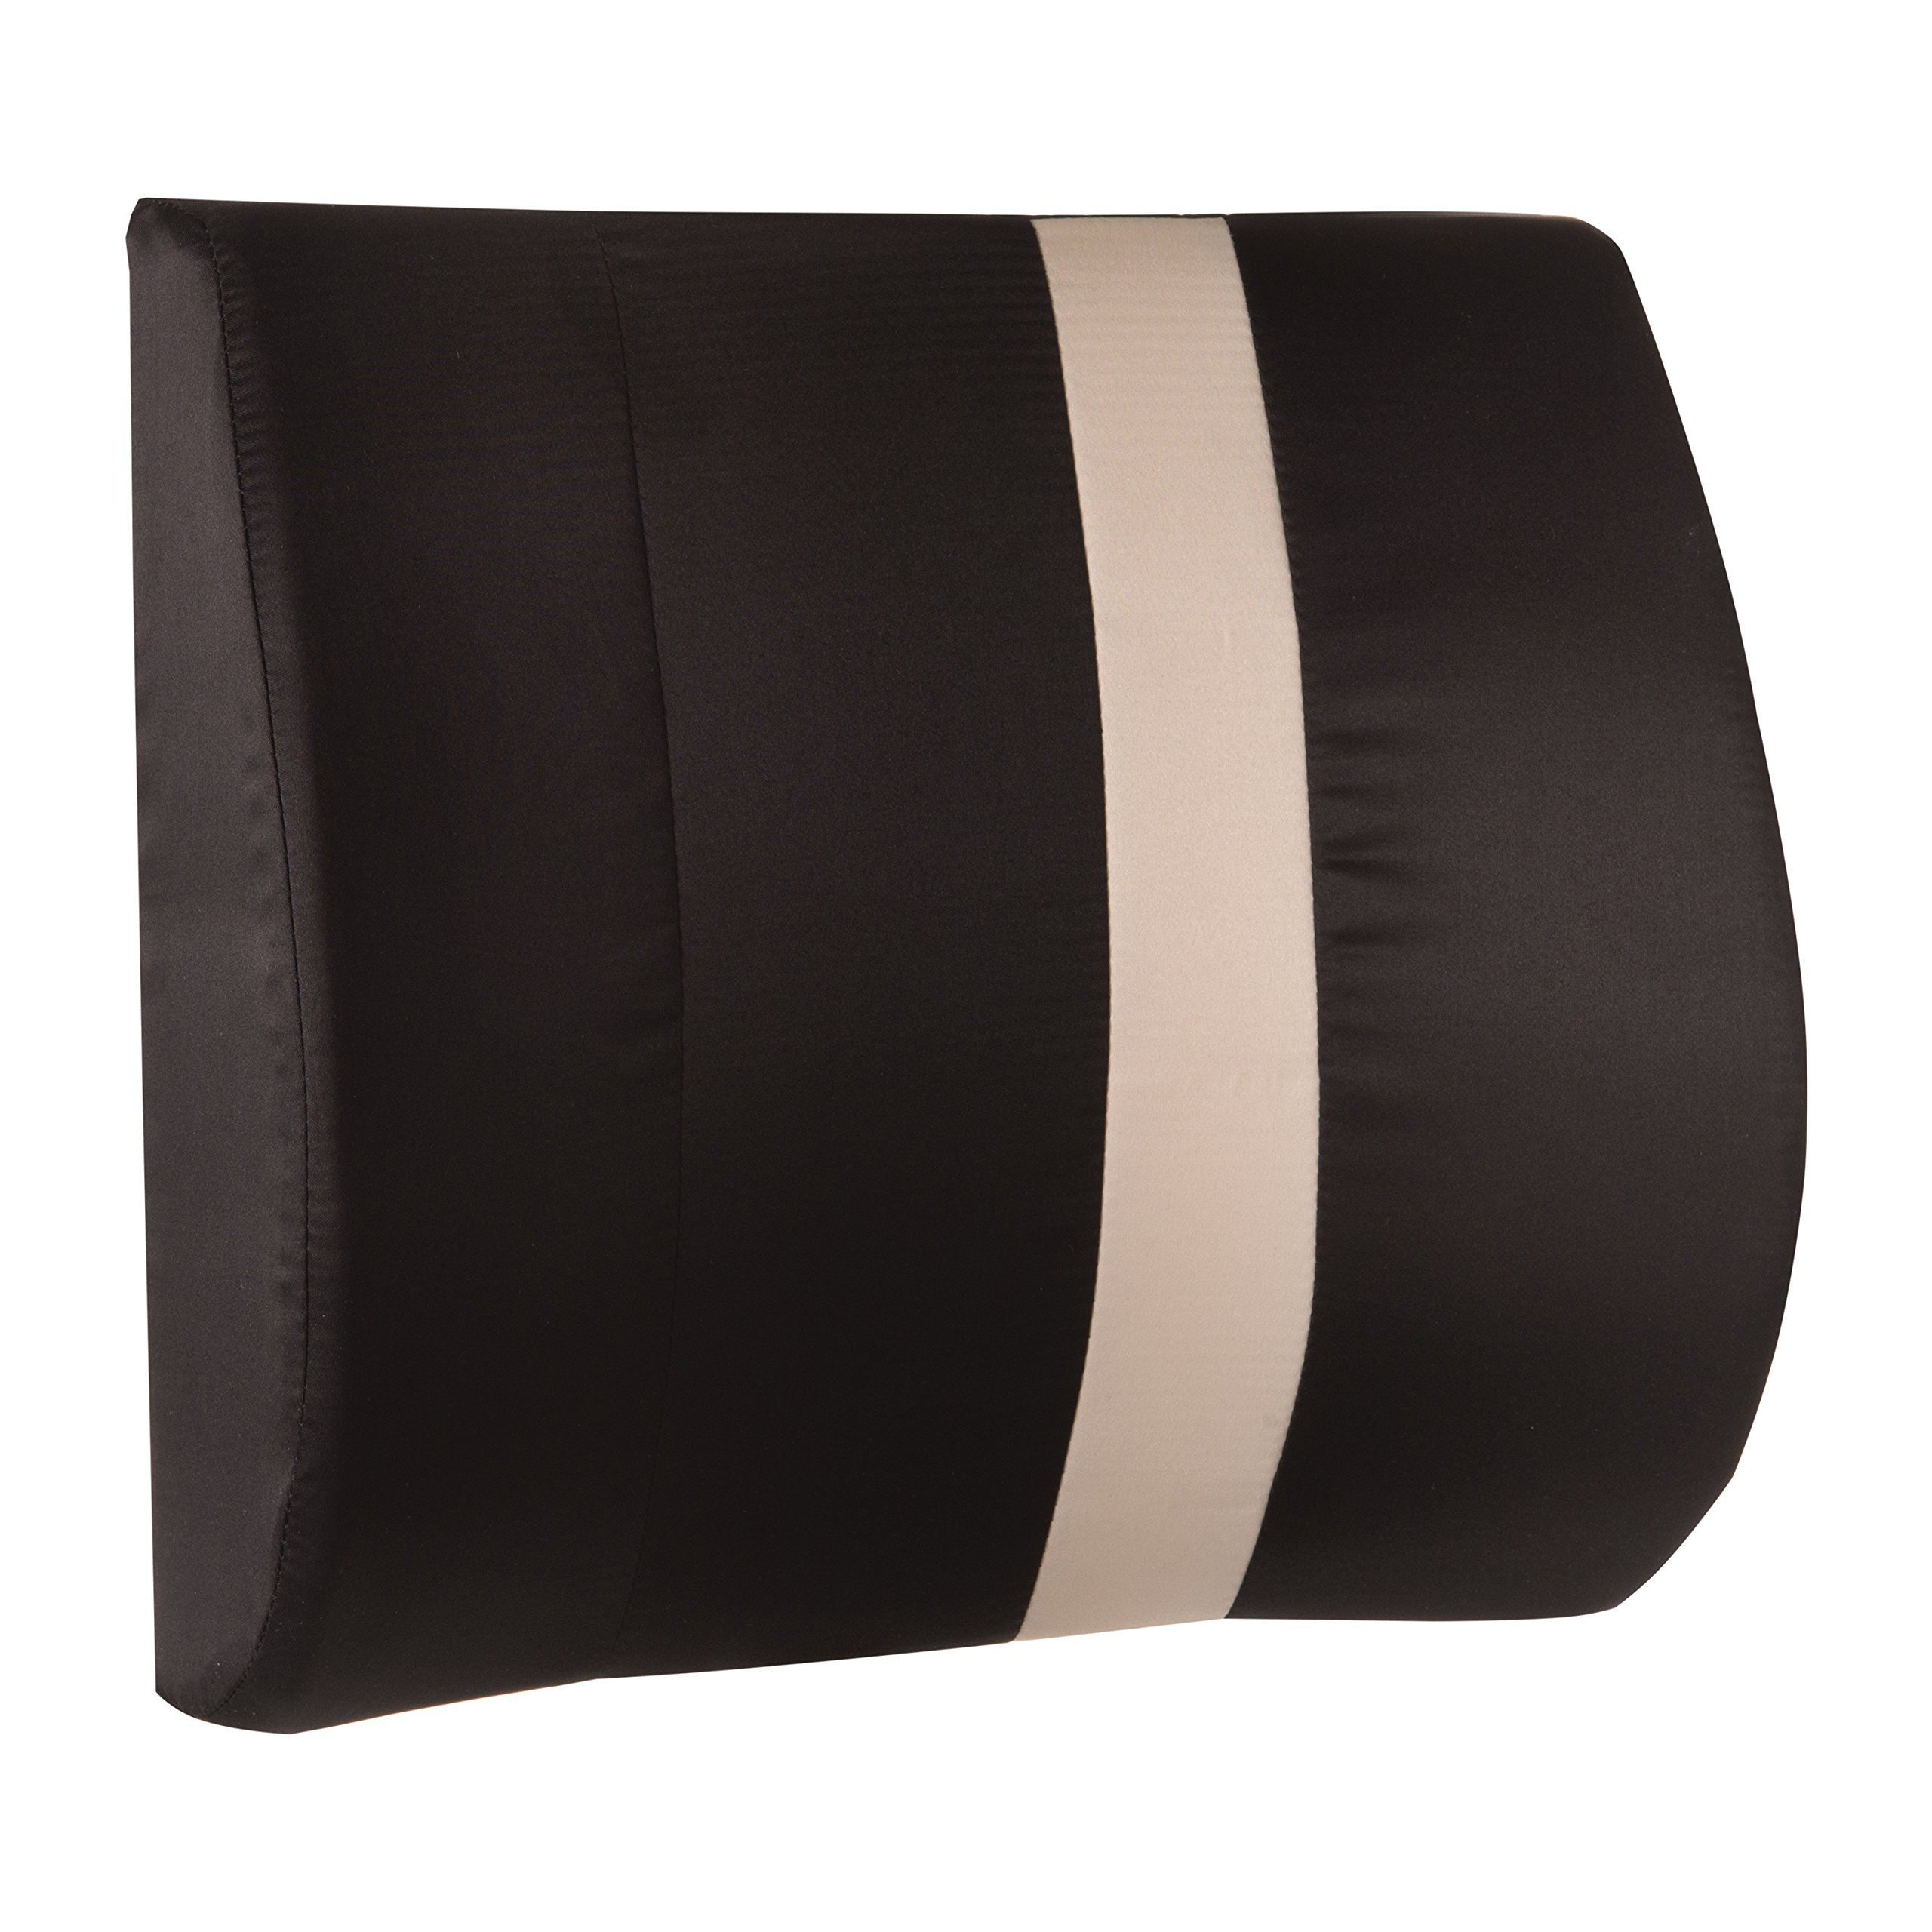 HealthSmart Vivi Relax-A-Bac Premium Lumbar Back Support Cushion Pillow with Insert and Strap, Great for Car, Black with Tan Stripe, 14 x 13 Inches